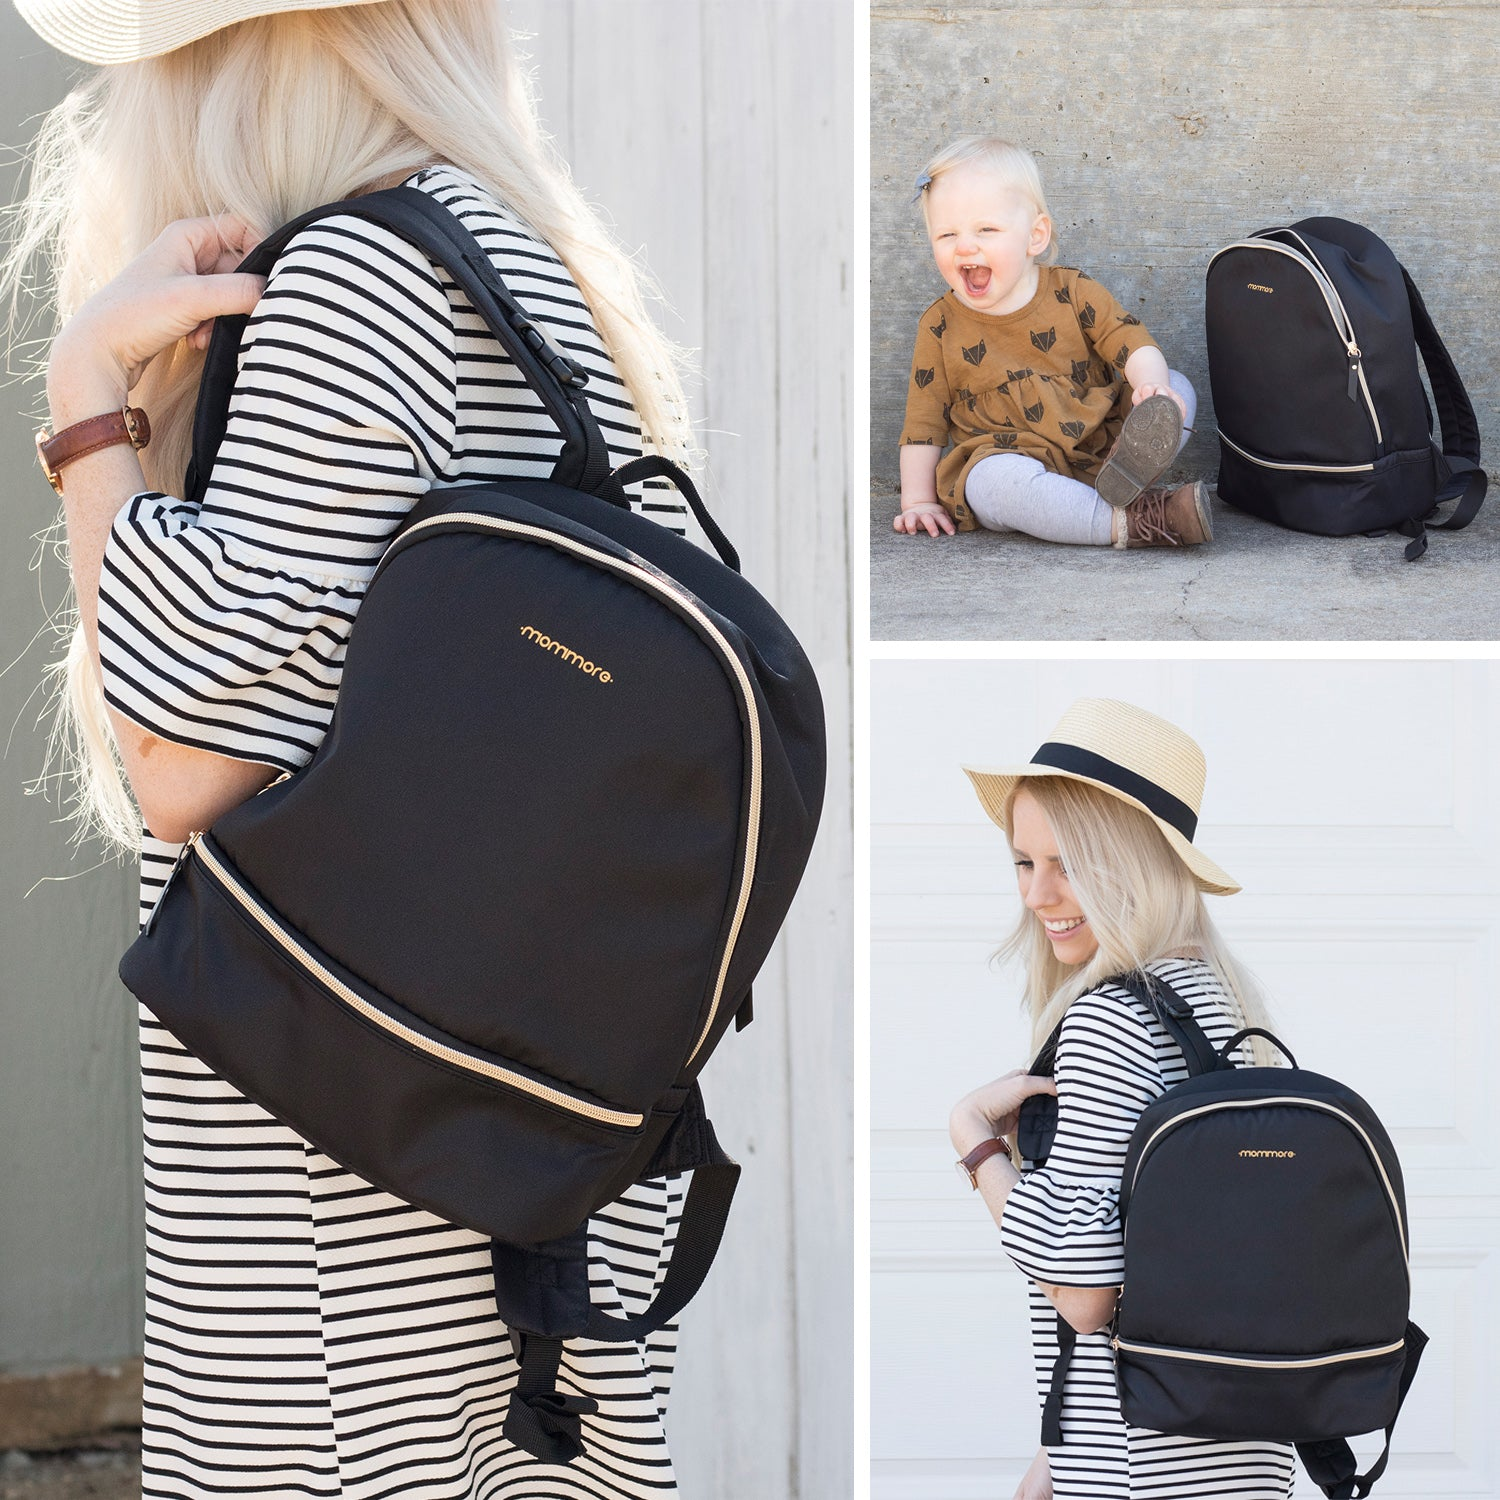 MULTI-FUNCTION BACKPACK DIAPER BAG